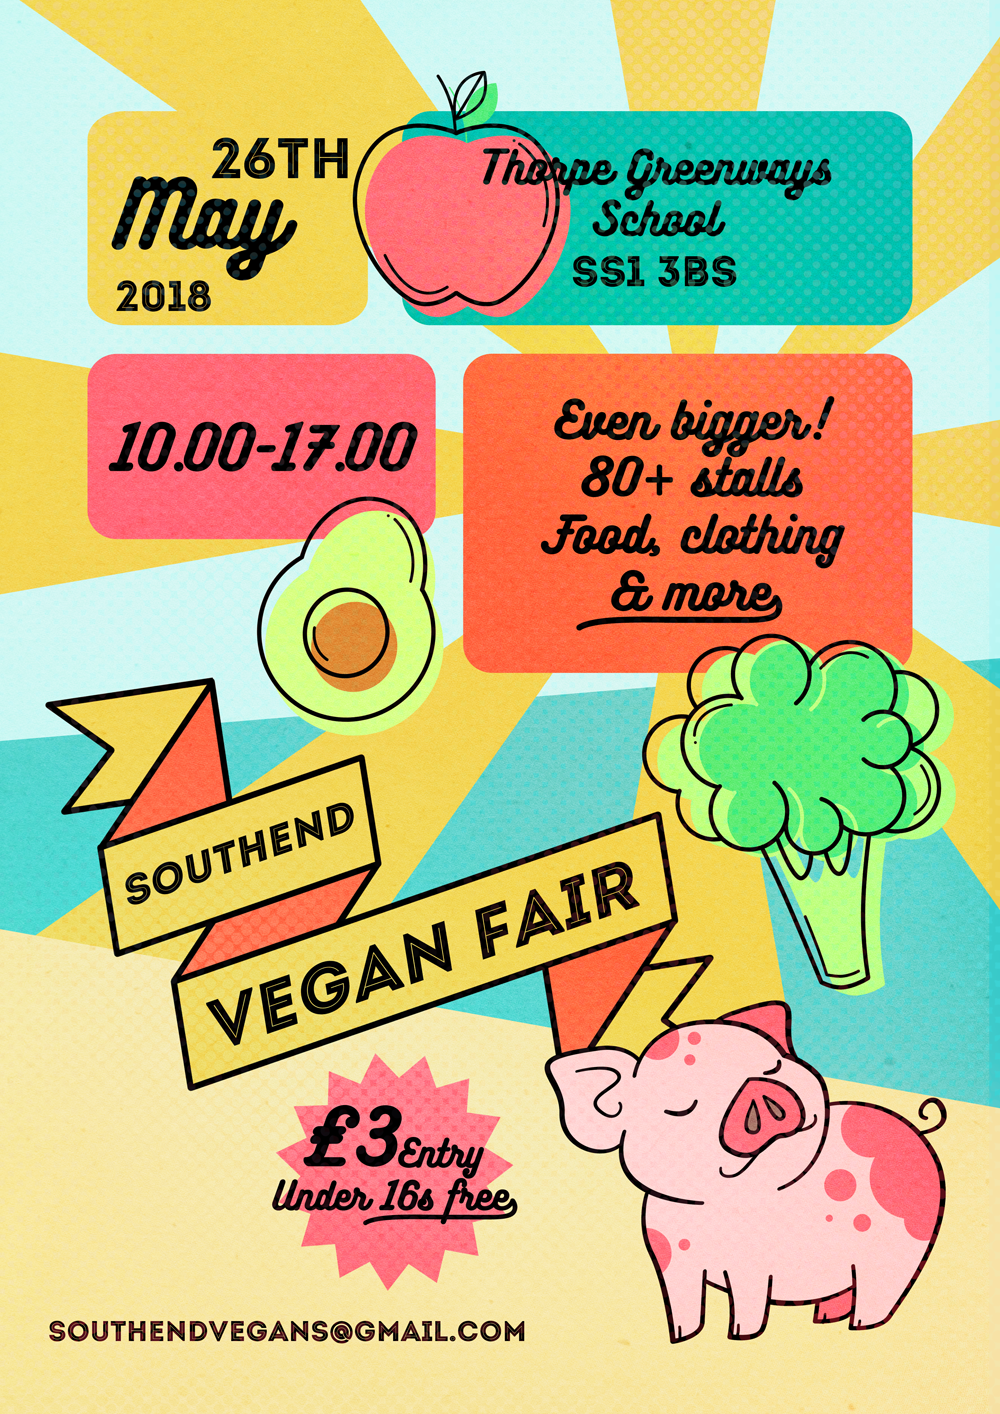 Southend Vegan Fair - Spring 2018 Edition